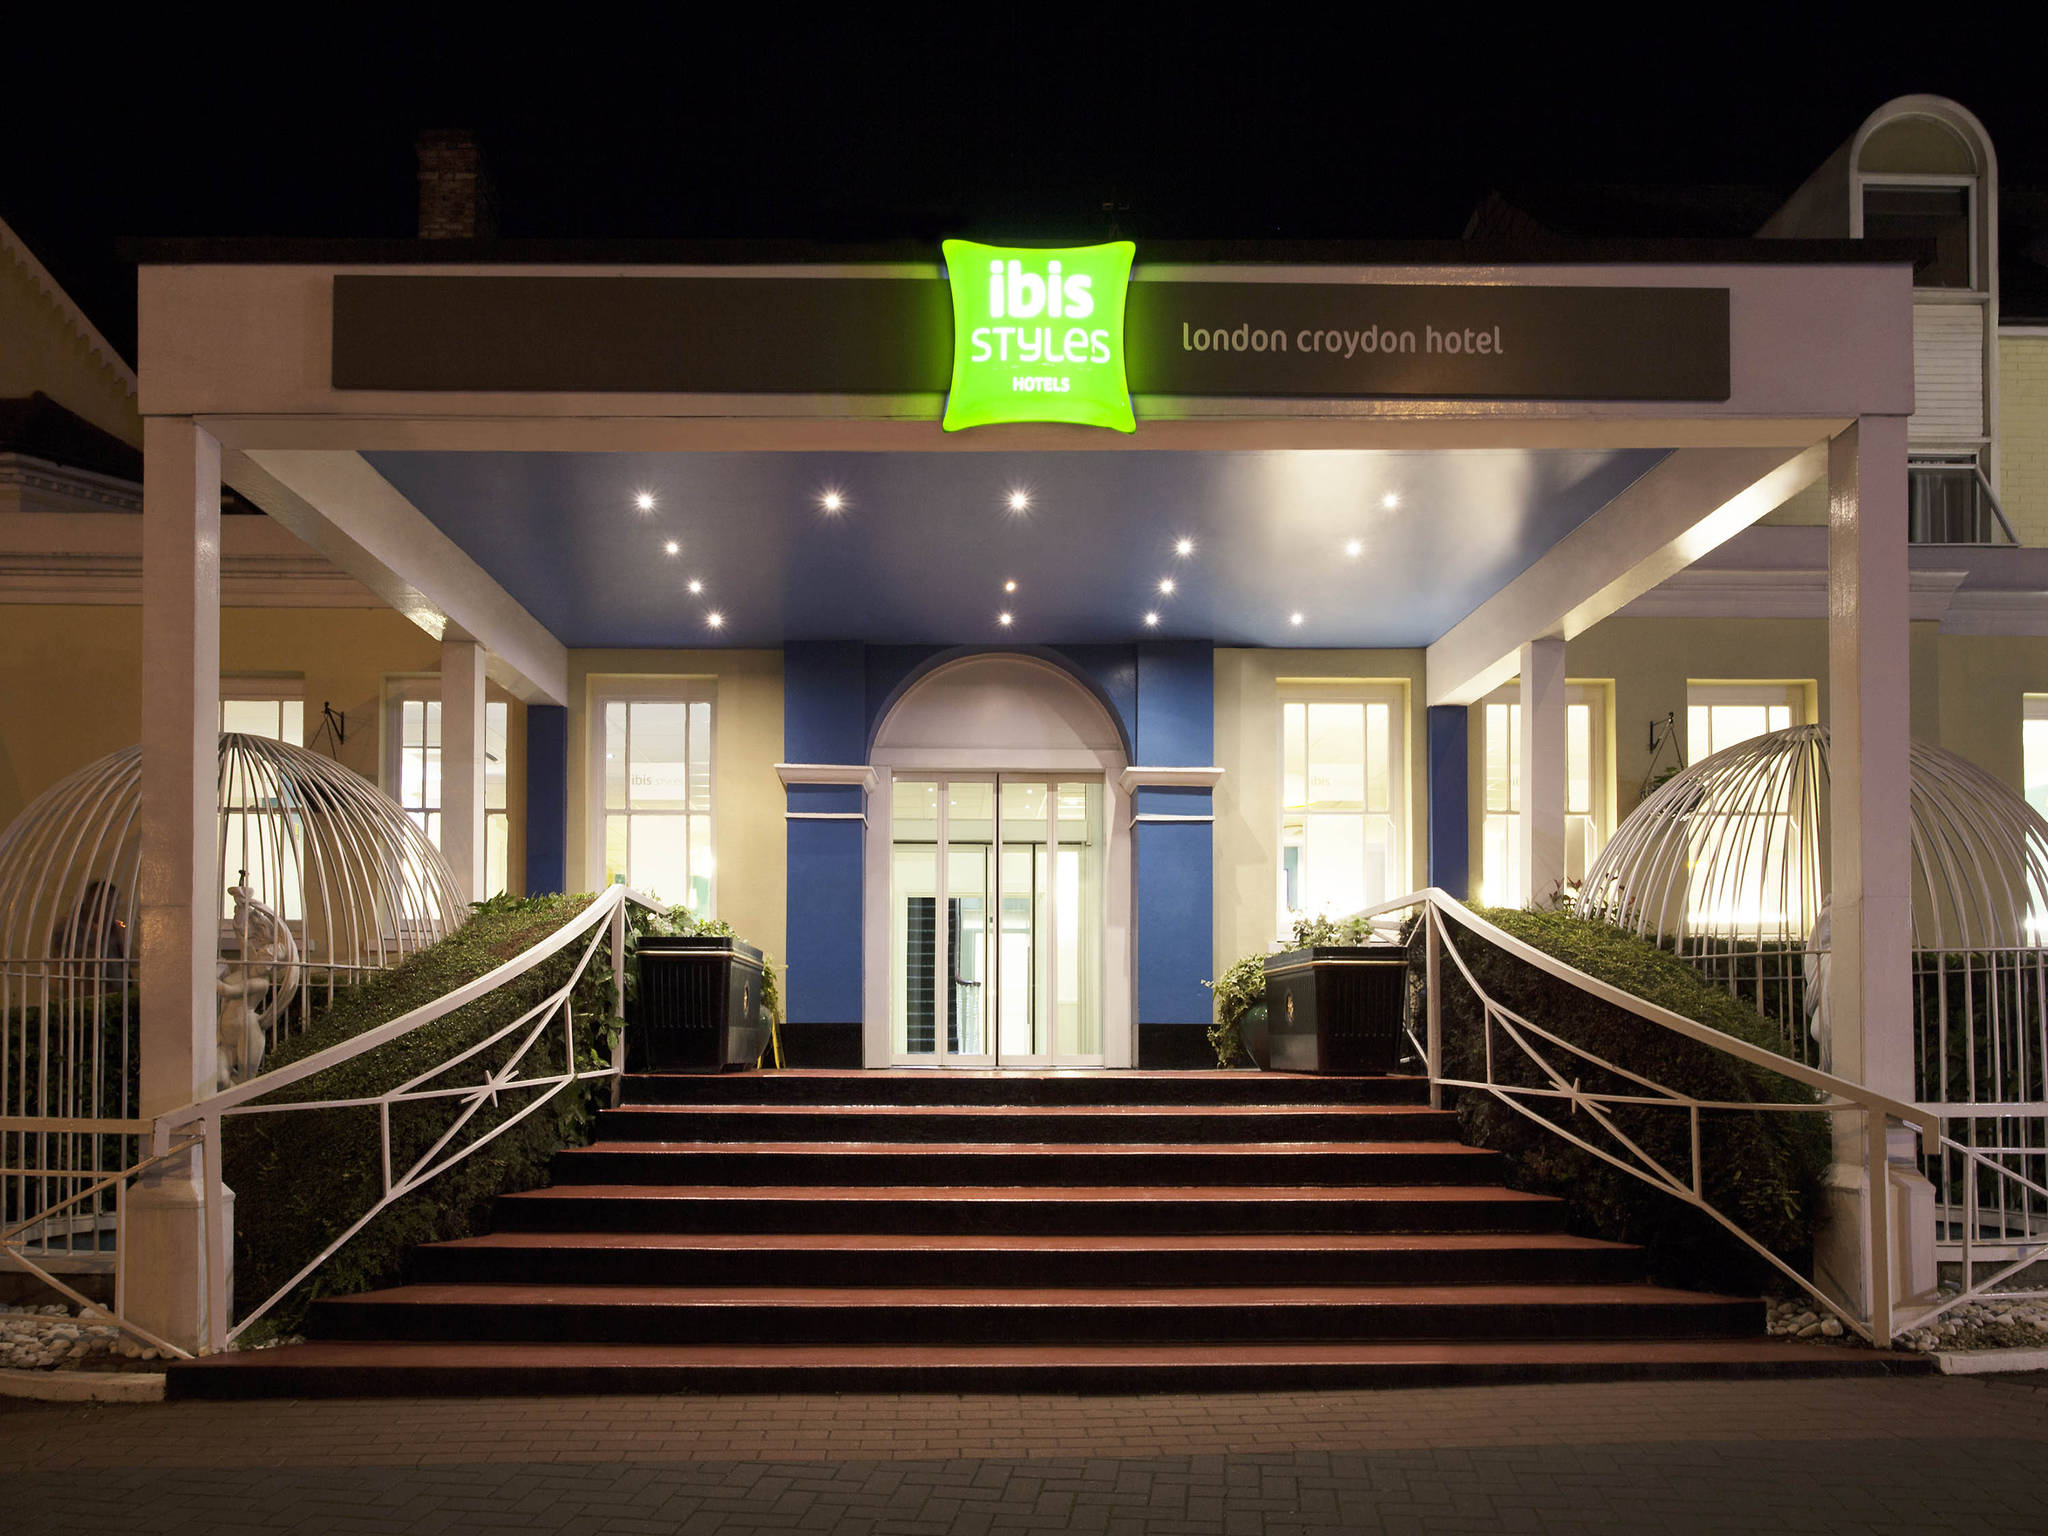 Hotell i london ibis styles london croydon for Hotel adagio londres